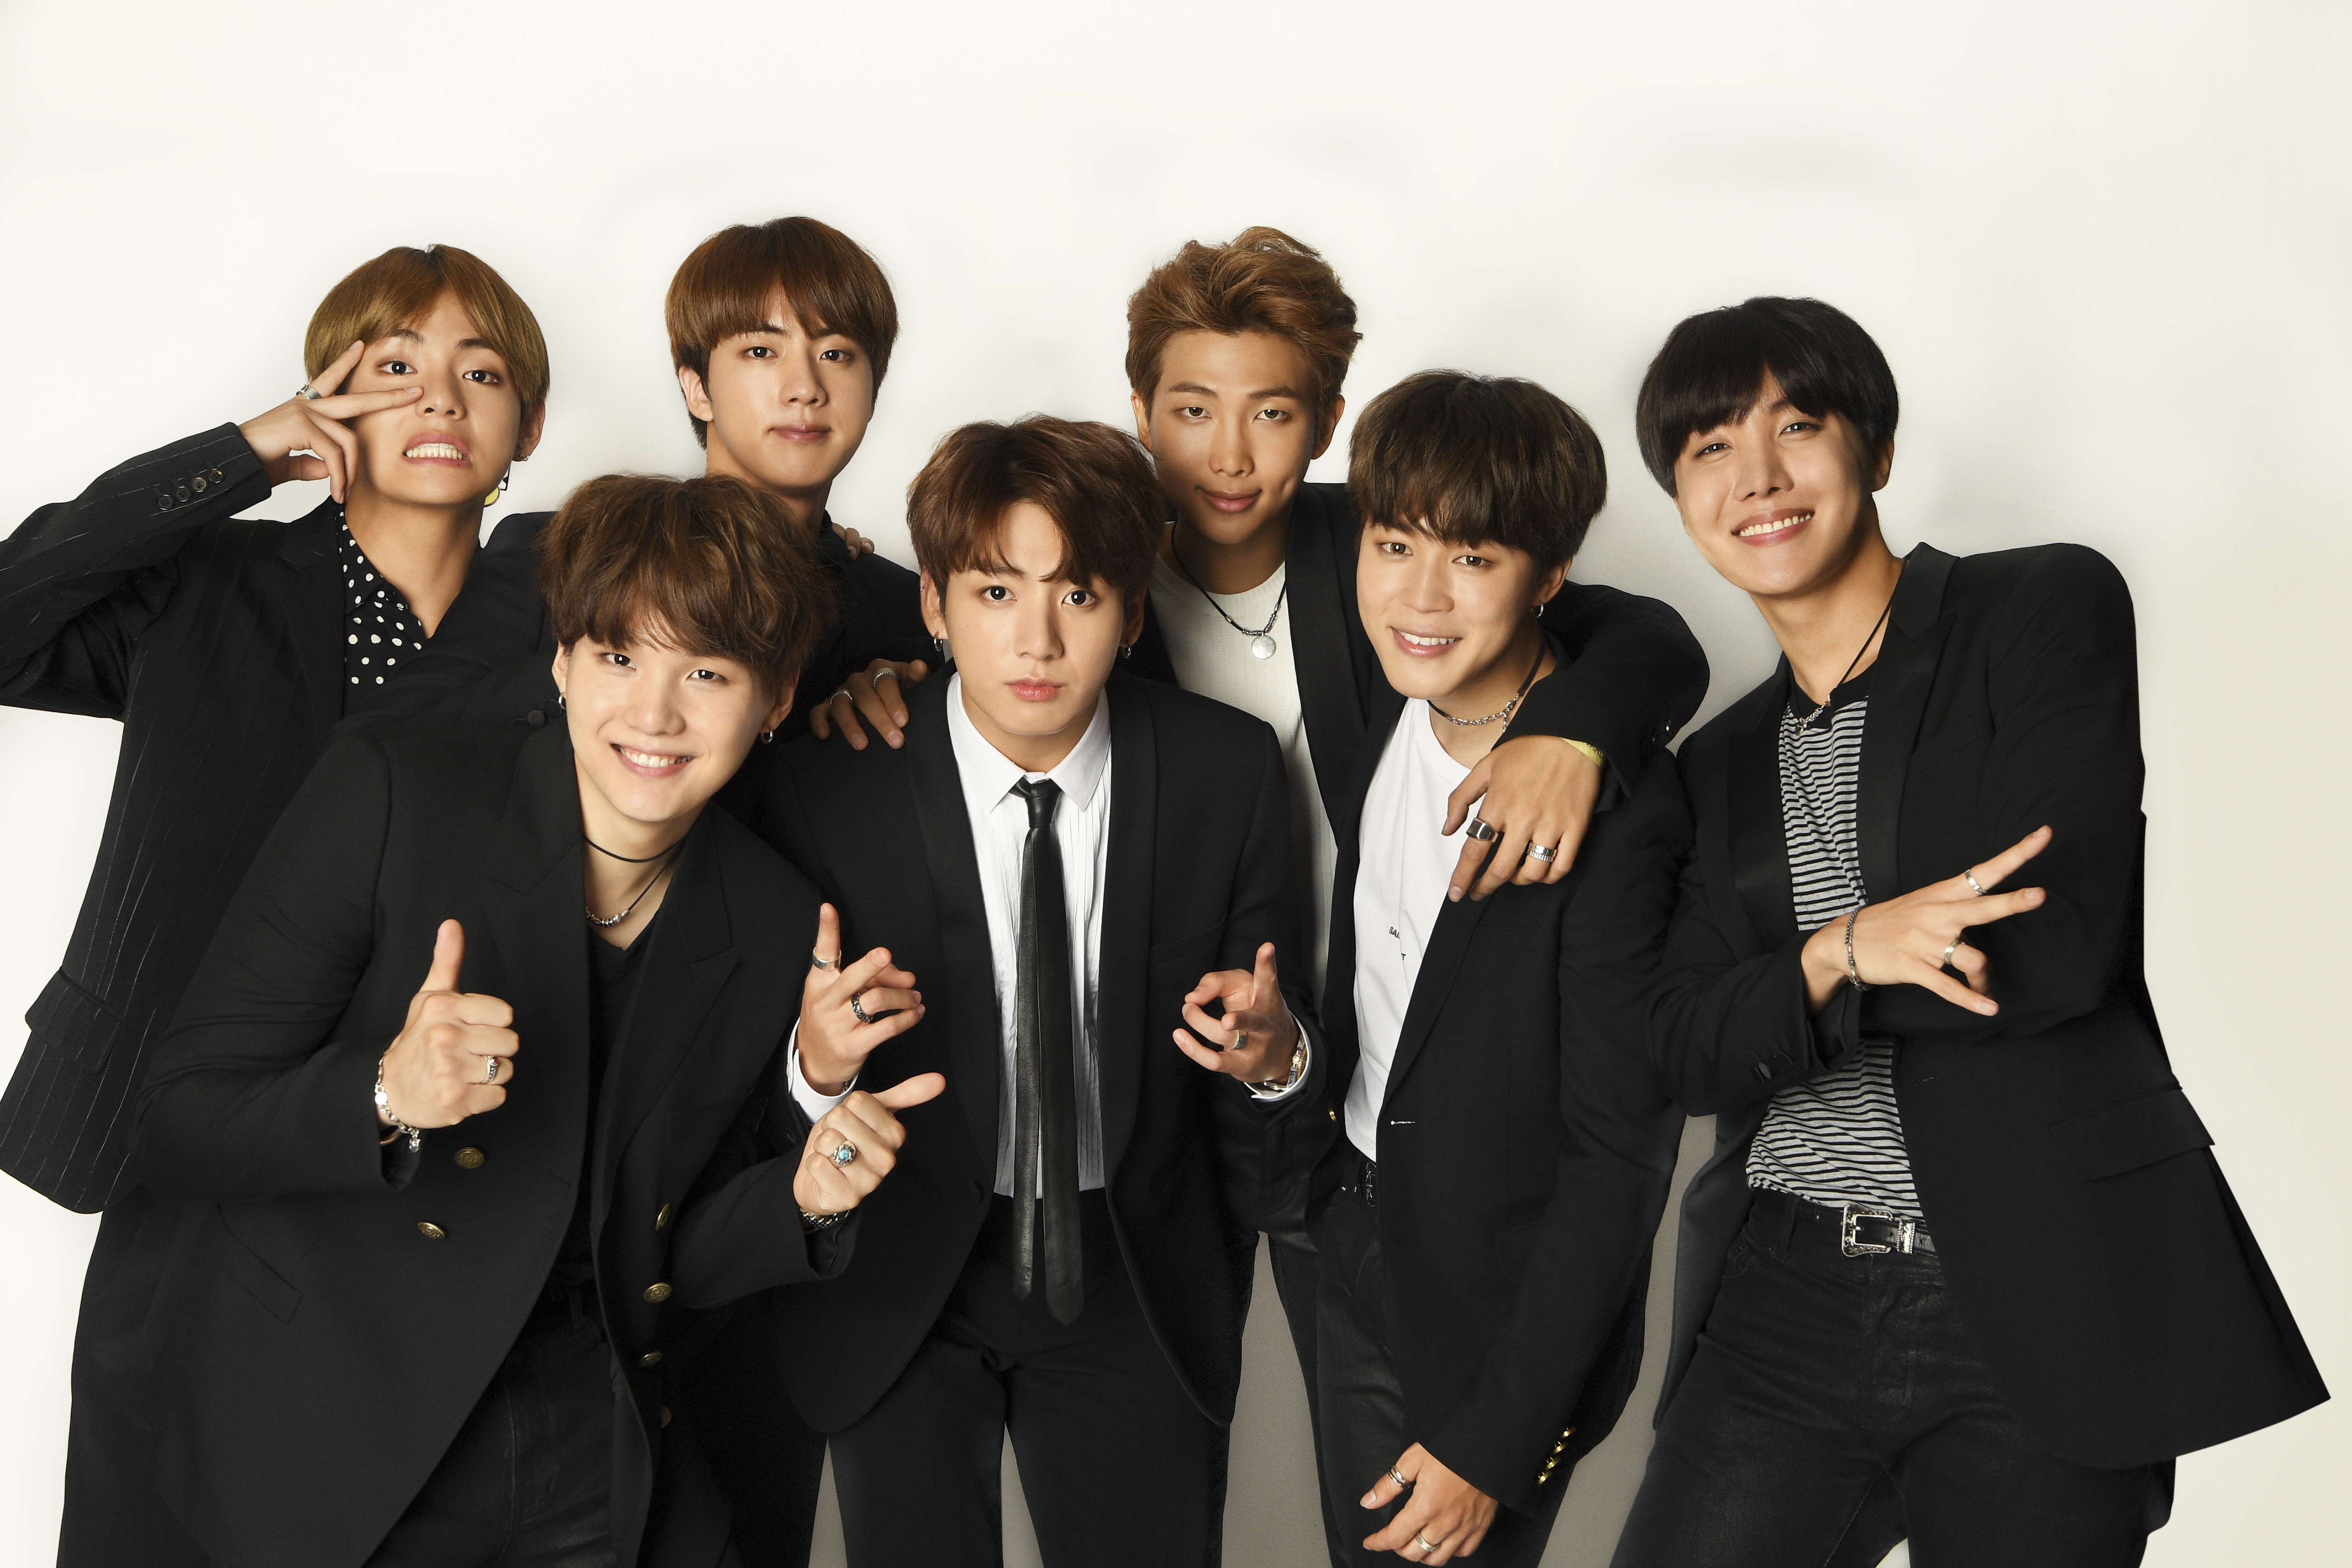 K Pop Band Bts Has Changed Its Name To Beyond The Scene Time